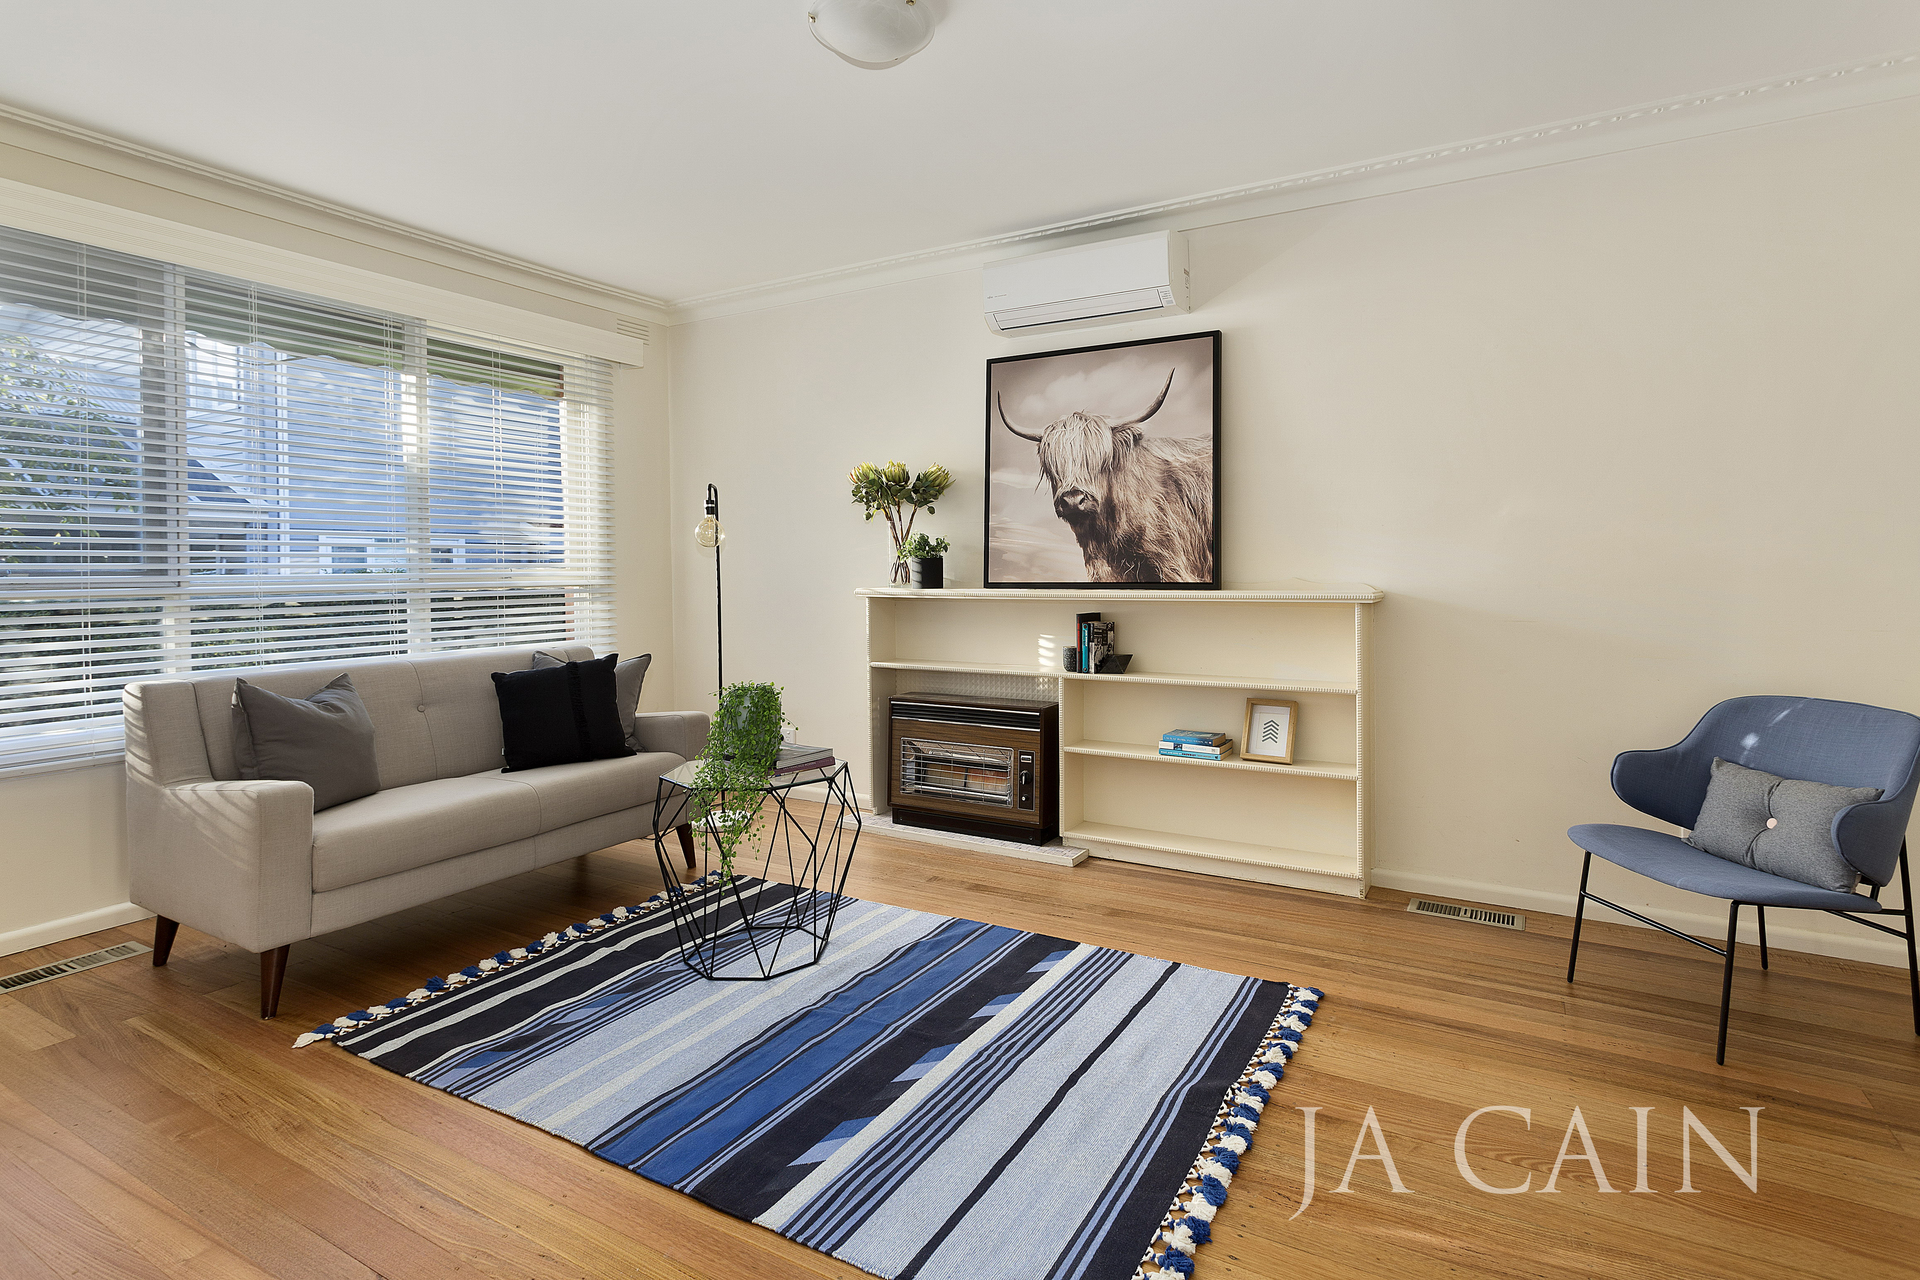 3/6 Laxdale Road Camberwell